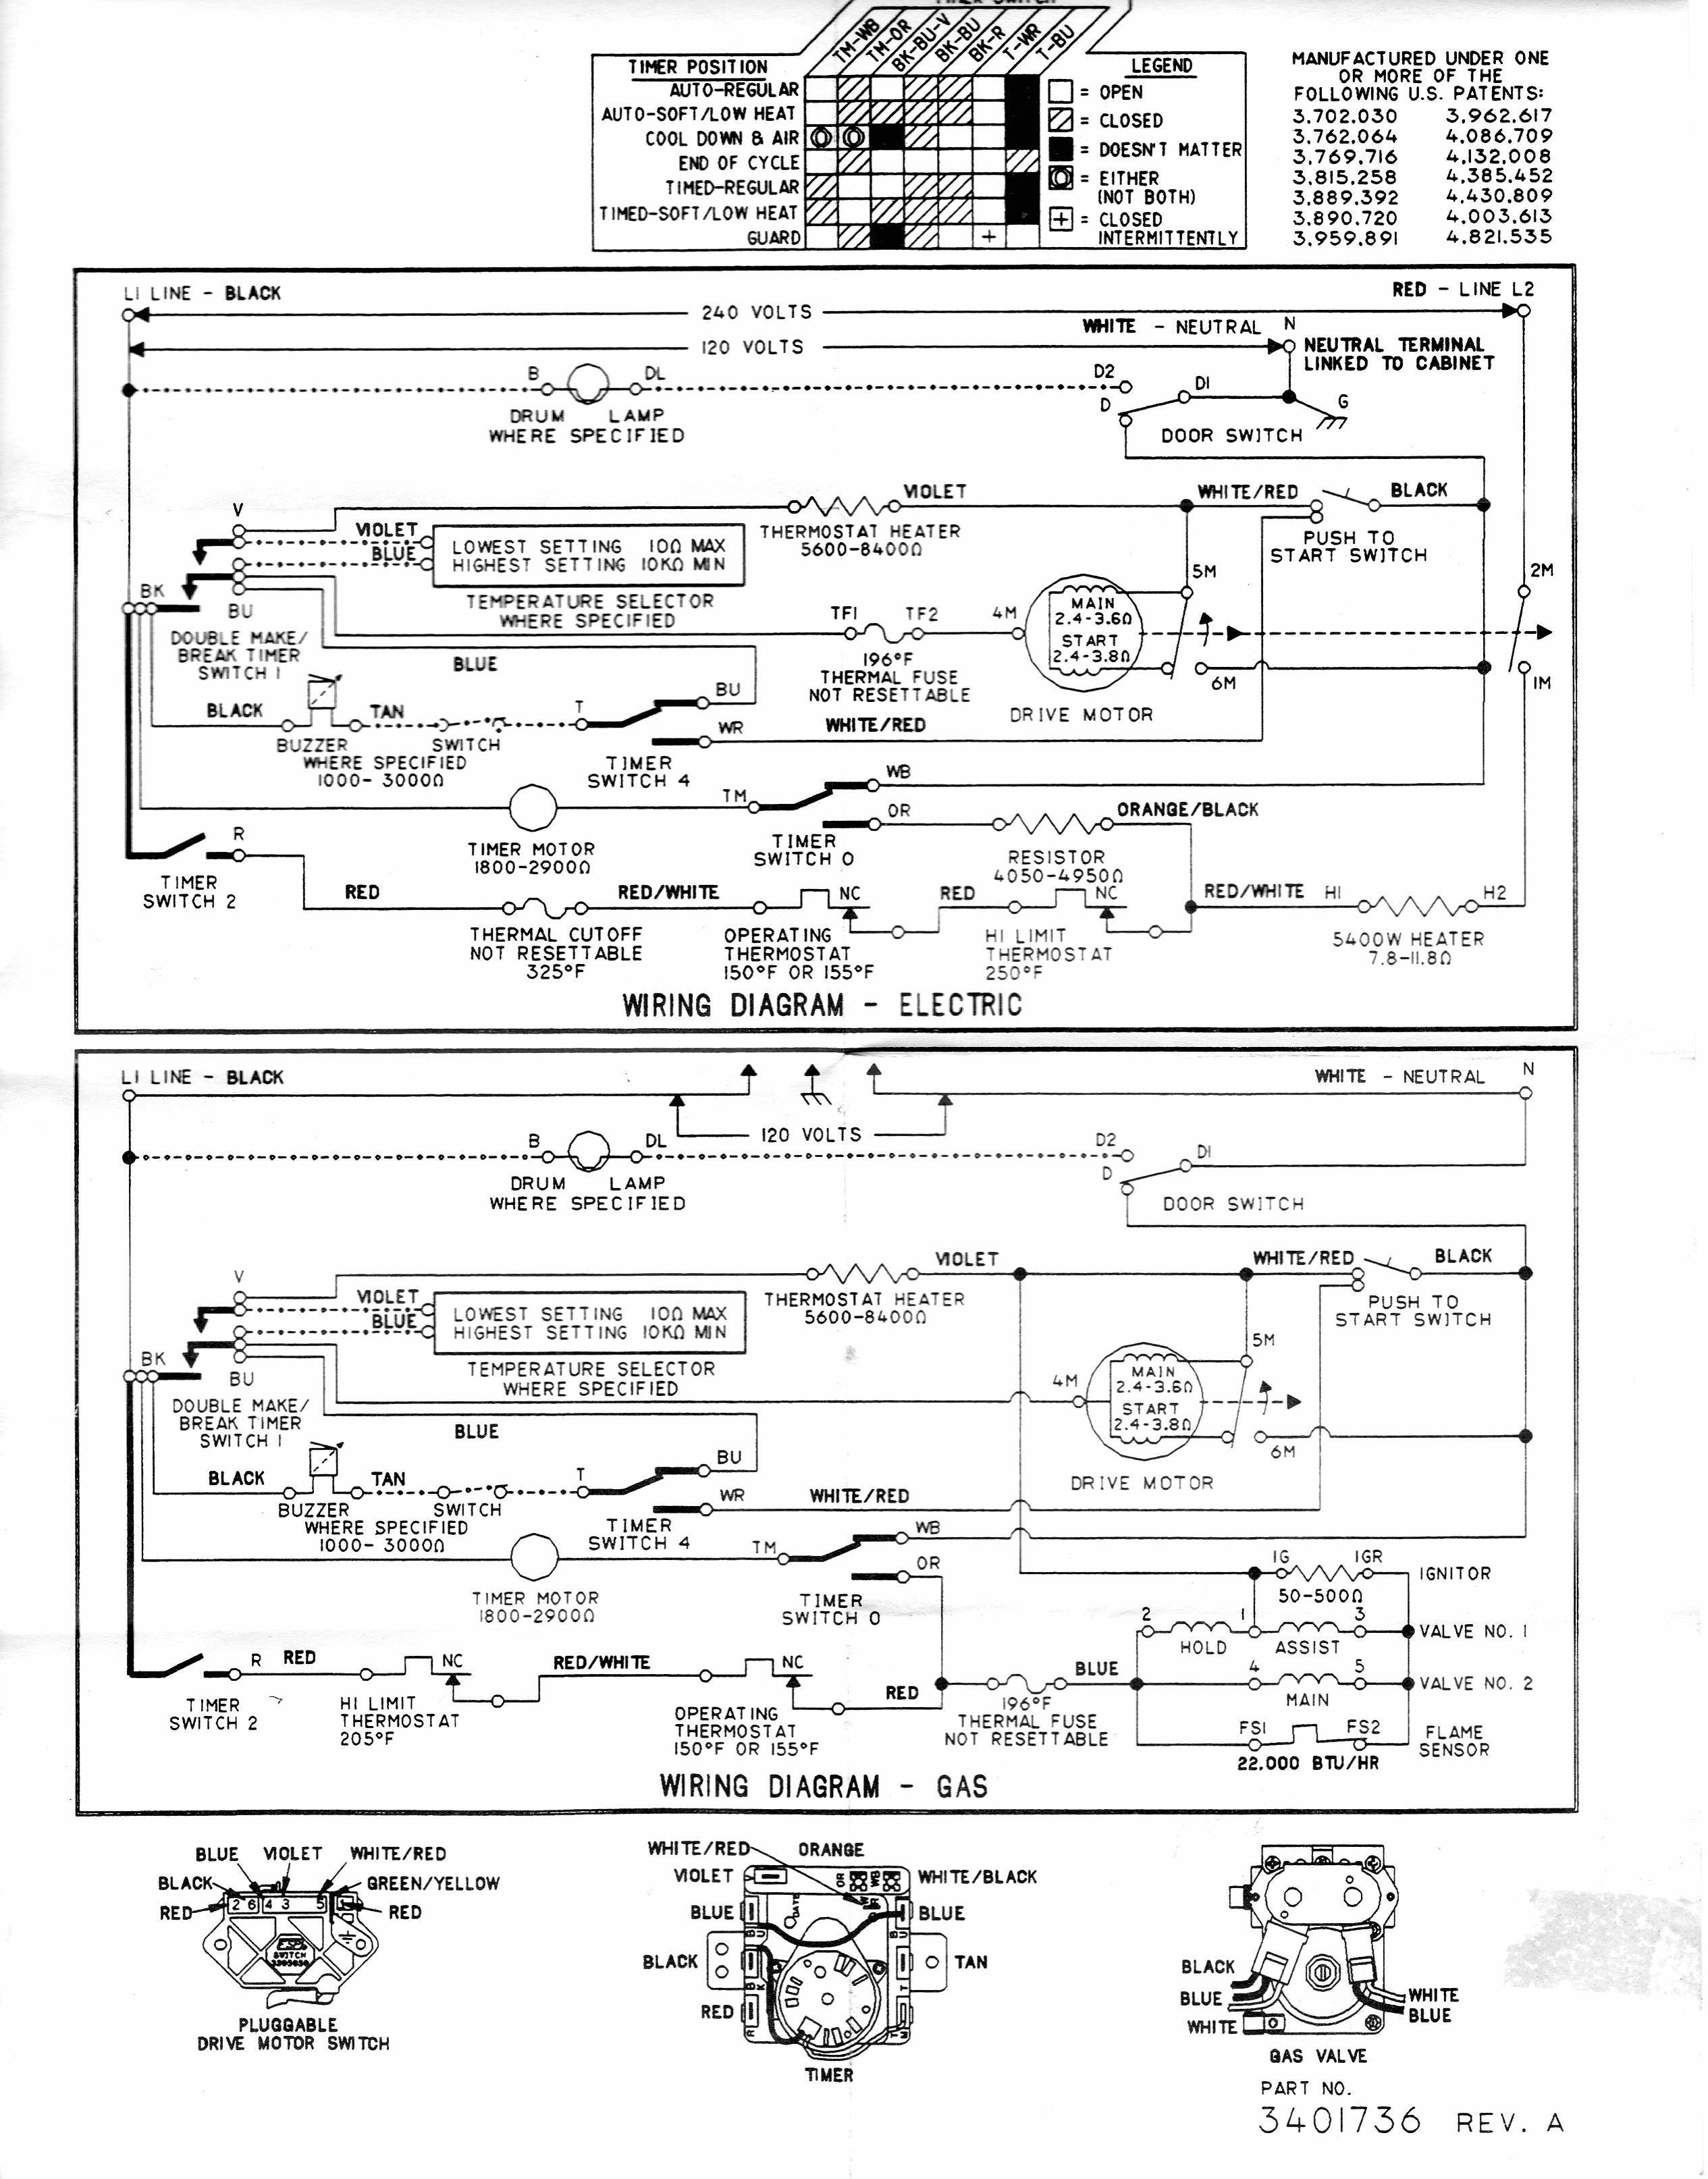 ge dryer wiring diagram, whirlpool wiring schematic, whirlpool duet sport model number, whirlpool washer diagram, roper dryer wiring diagram, amana dryer wiring diagram, hotpoint dryer wiring diagram, electrolux dryer wiring diagram, whirlpool dryer repair diagram, whirlpool electric dryer diagram, whirlpool schematic diagrams, whirlpool dryer timer wiring diagram, whirlpool dryer power cord diagram, kenmore dryer wiring diagram, ggw9200lw0 dryer wiring diagram, haier dryer wiring diagram, maytag dryer wiring diagram, dryer plug wiring diagram, bosch dryer wiring diagram, electric dryer wiring diagram, on whirlpool duet dryer wiring diagram